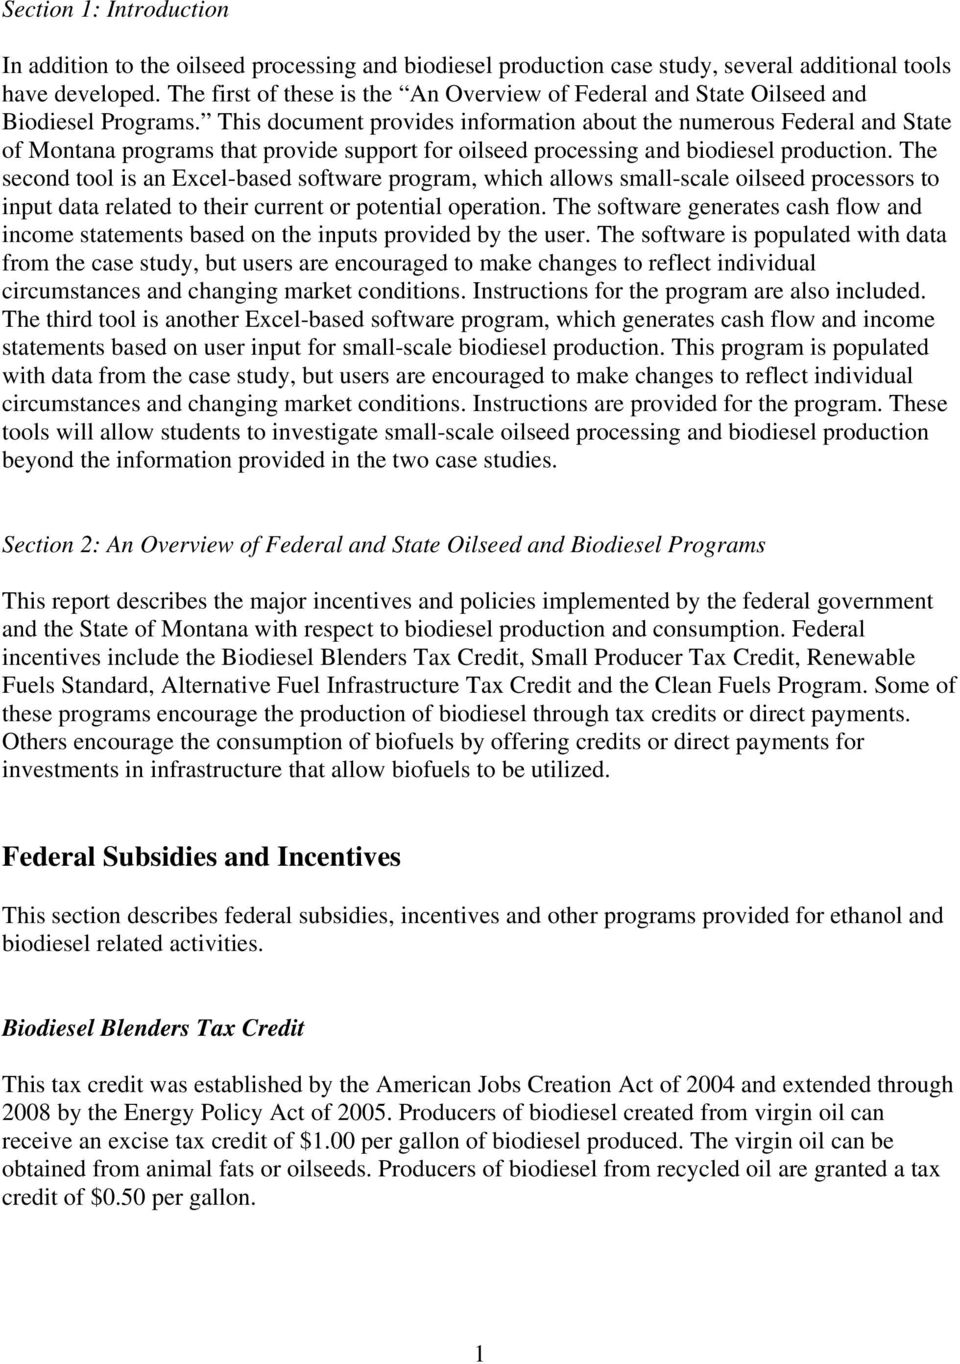 This document provides information about the numerous Federal and State of Montana programs that provide support for oilseed processing and biodiesel production.